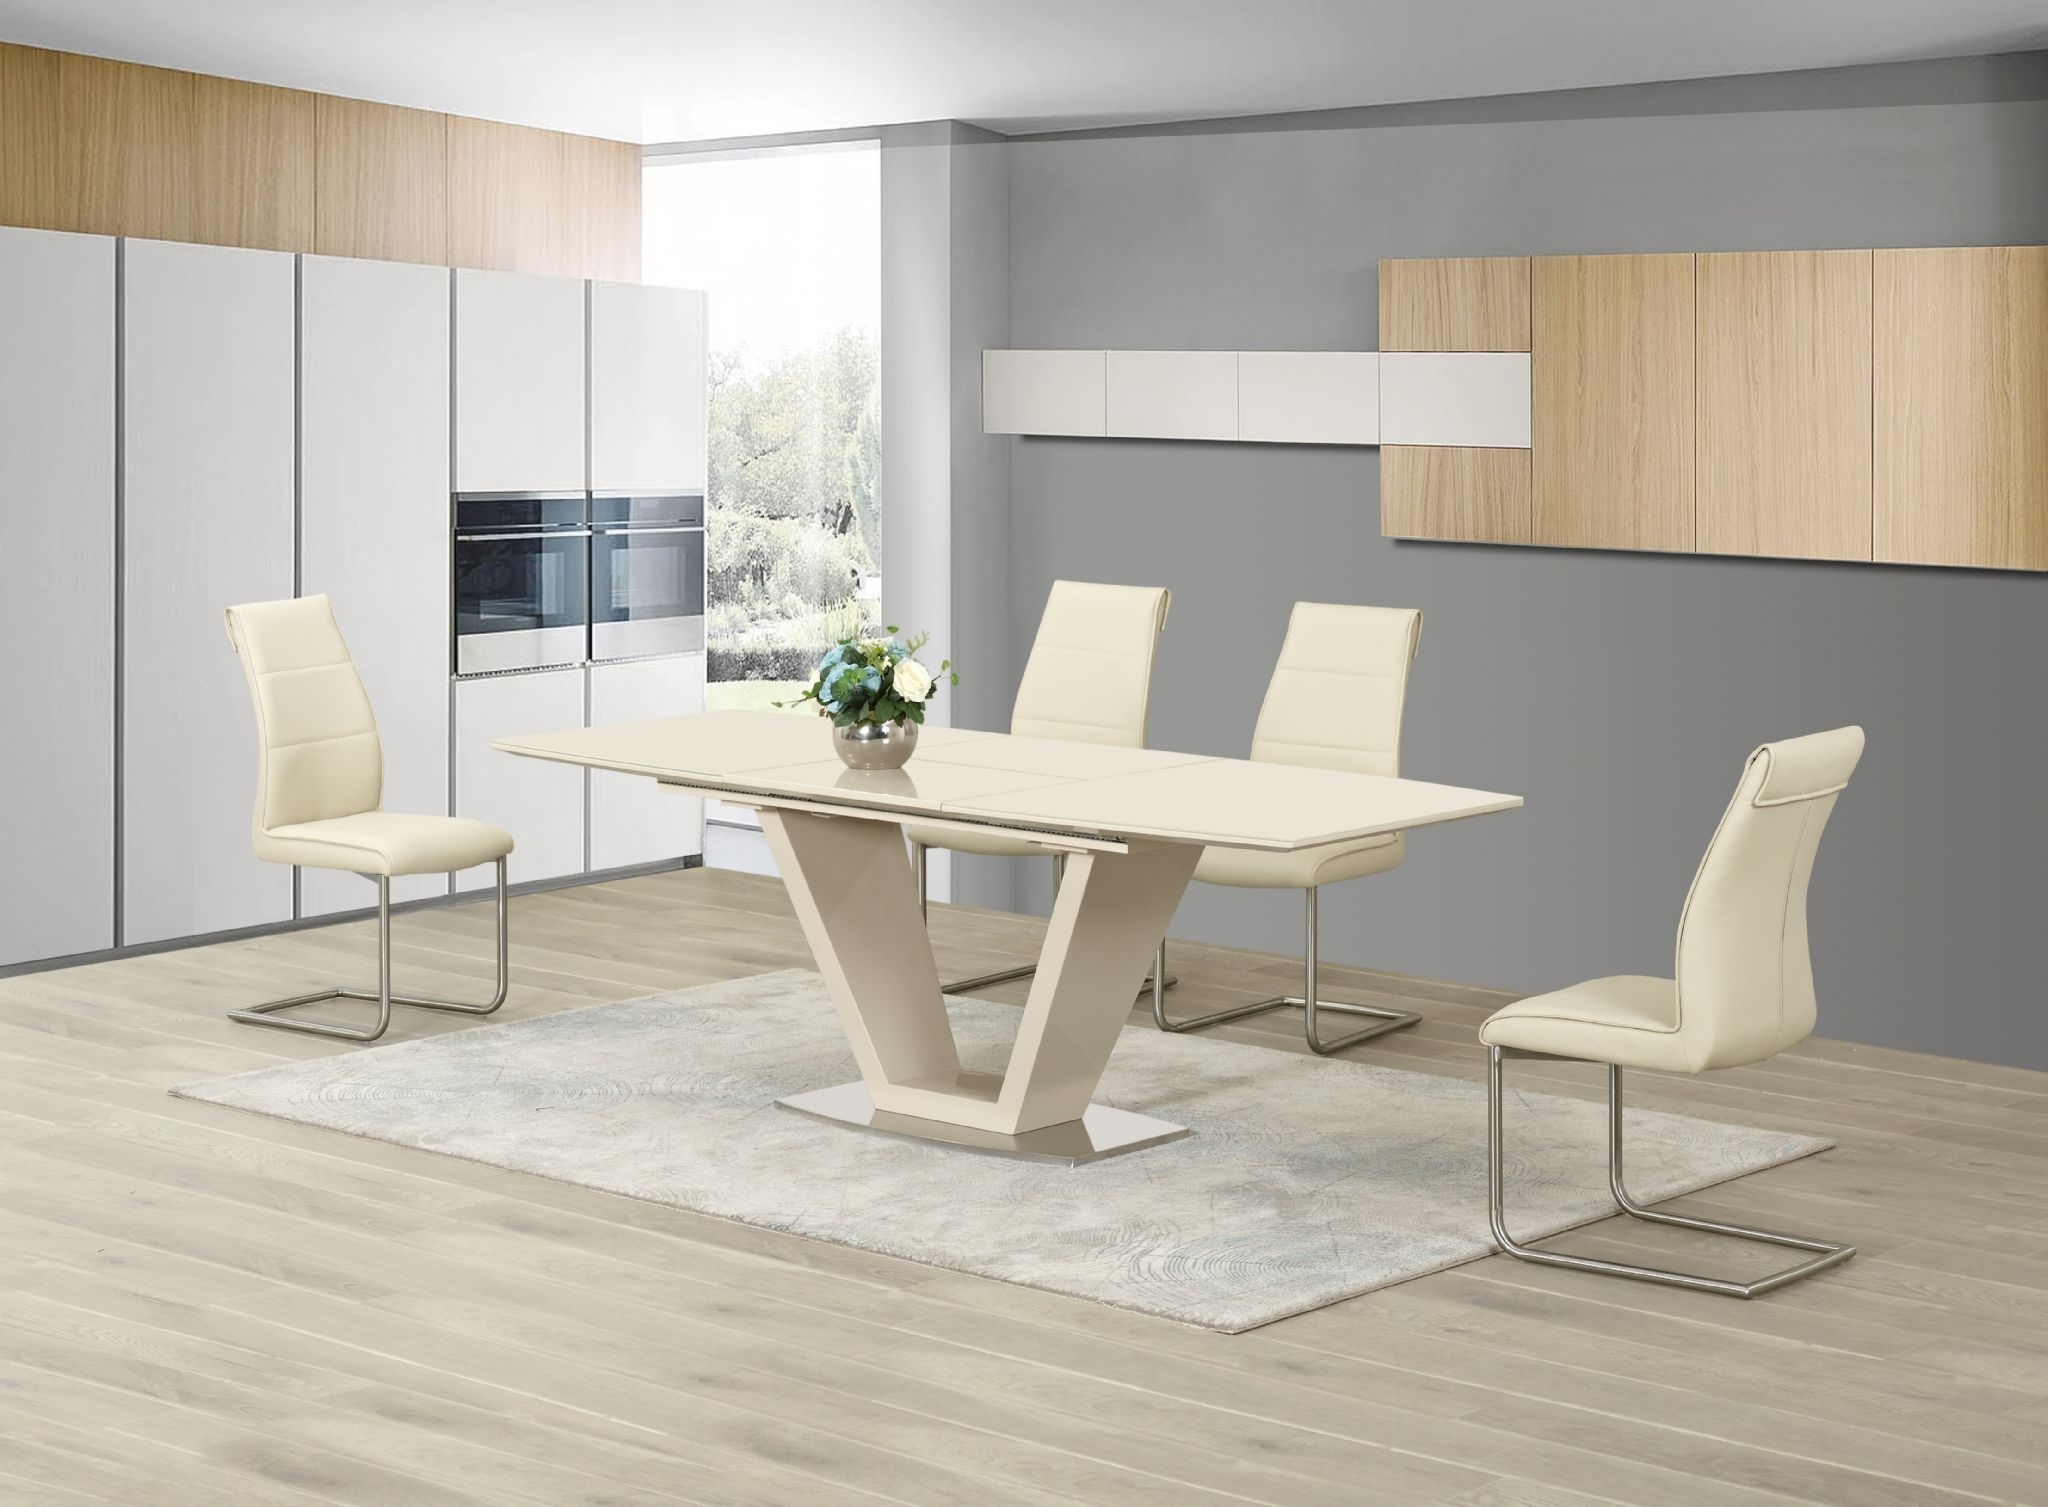 Ga Loriga Cream Gloss Glass Designer Dining Table Extending 160 220 Pertaining To Recent High Gloss Dining Tables Sets (View 18 of 25)